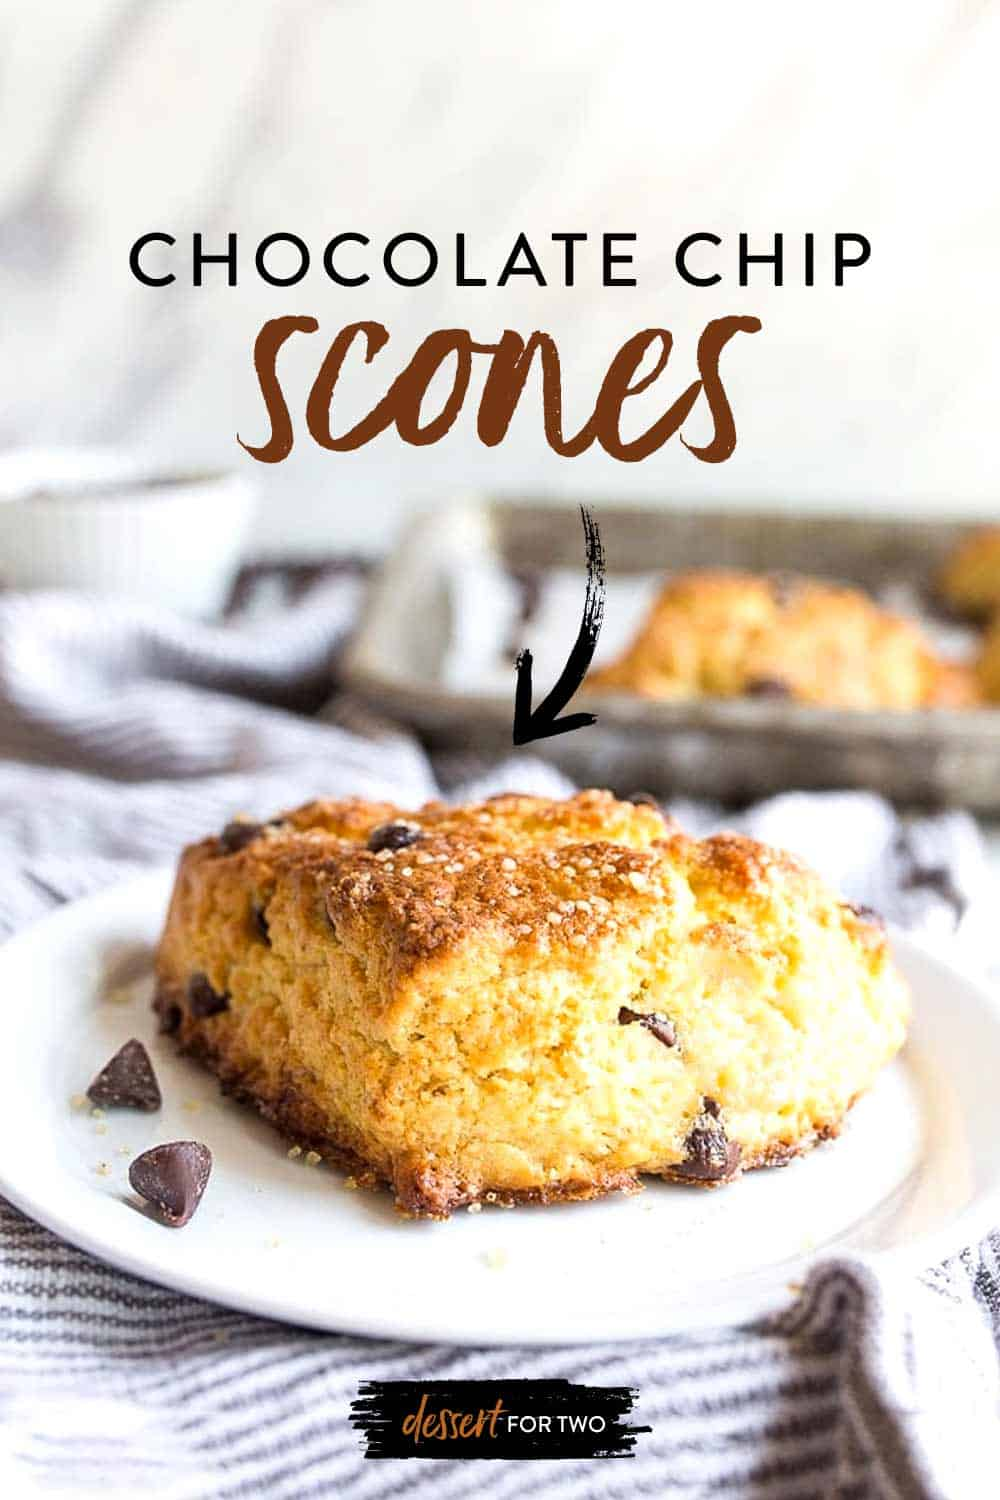 single chocolate chip scone on white plate